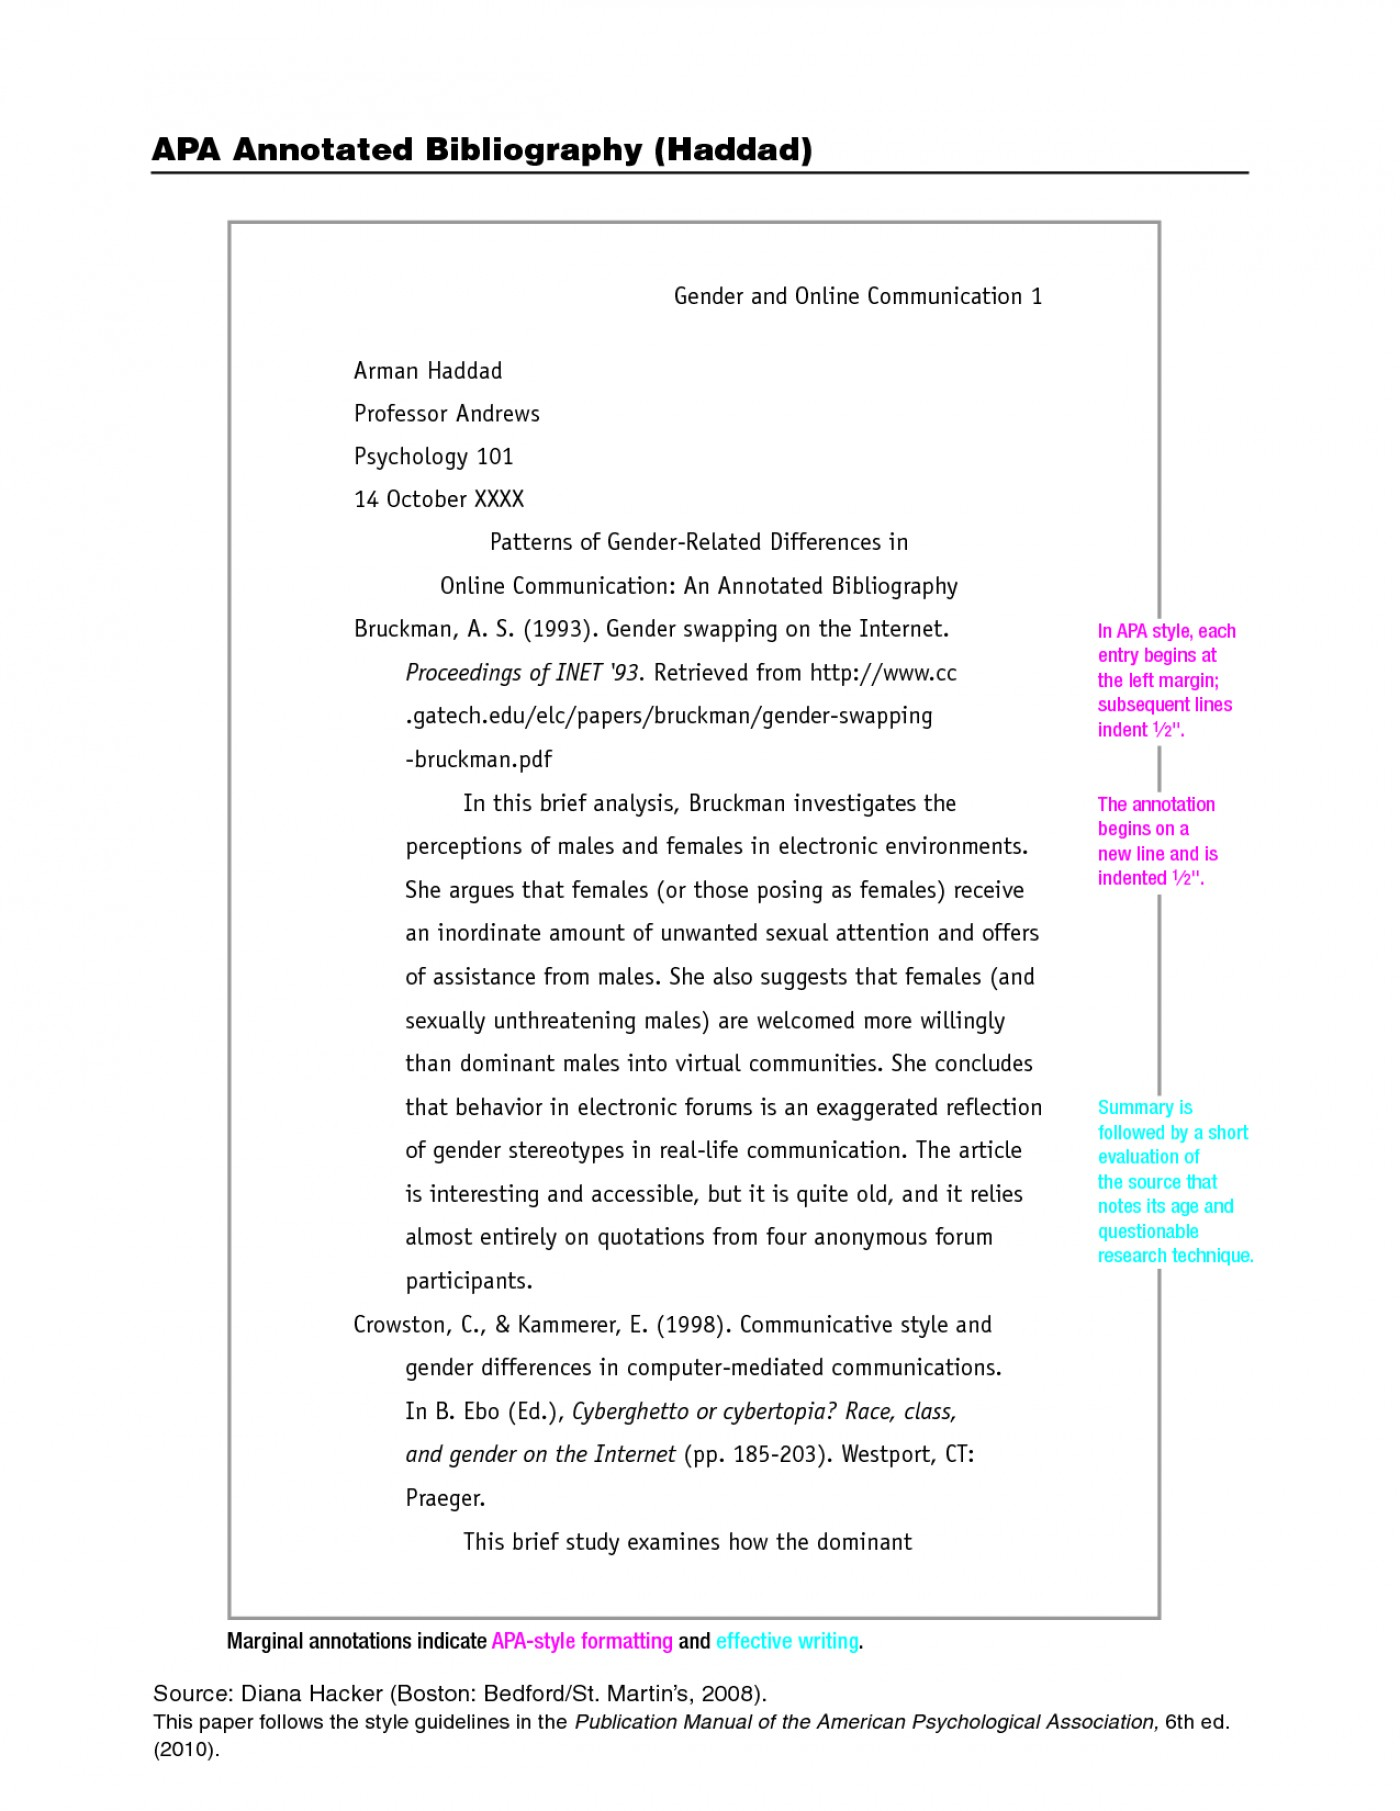 015 Research Paper How To Write Good Fast 1198784868 Unusual A 3 Page On Food 1400